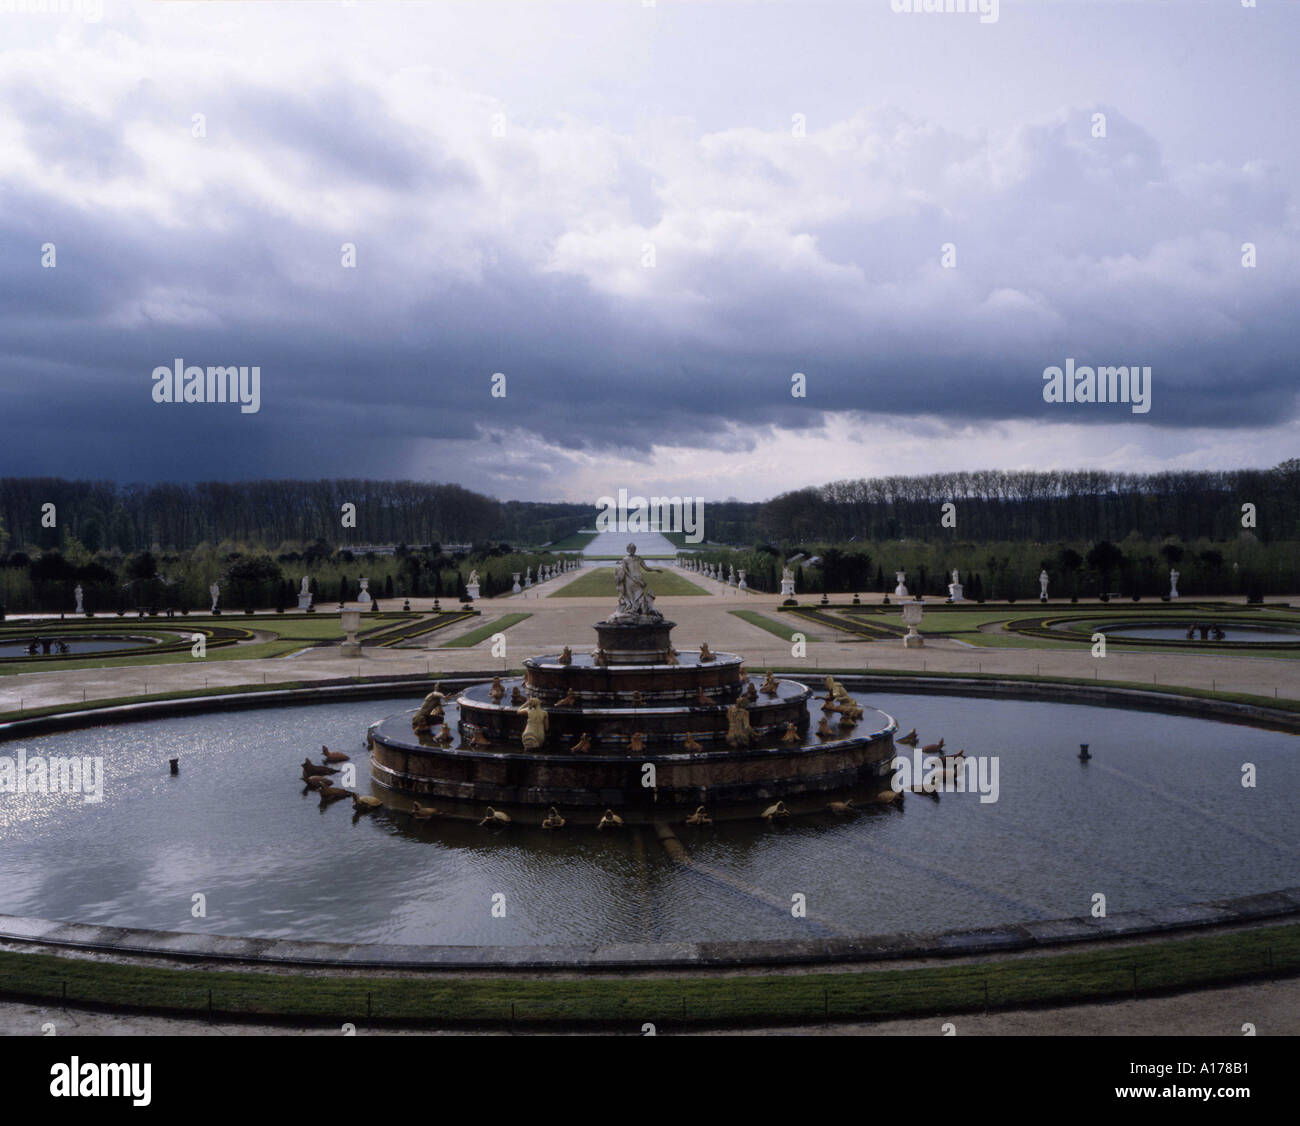 Latona fountain in the gardens of Versailles, France - Stock Image